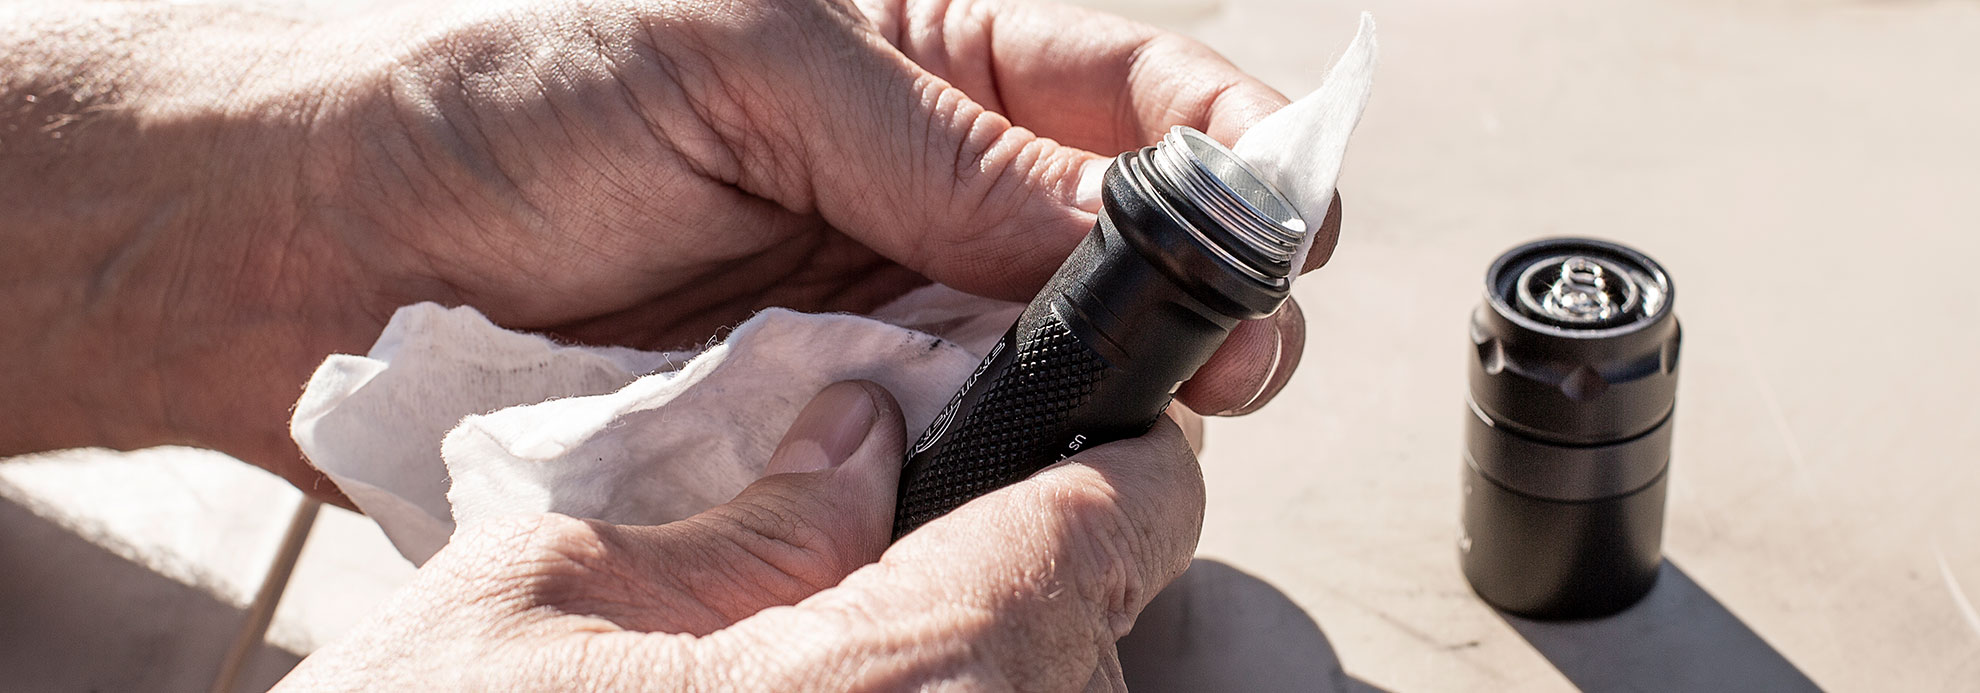 SureFire flashlight maintenance